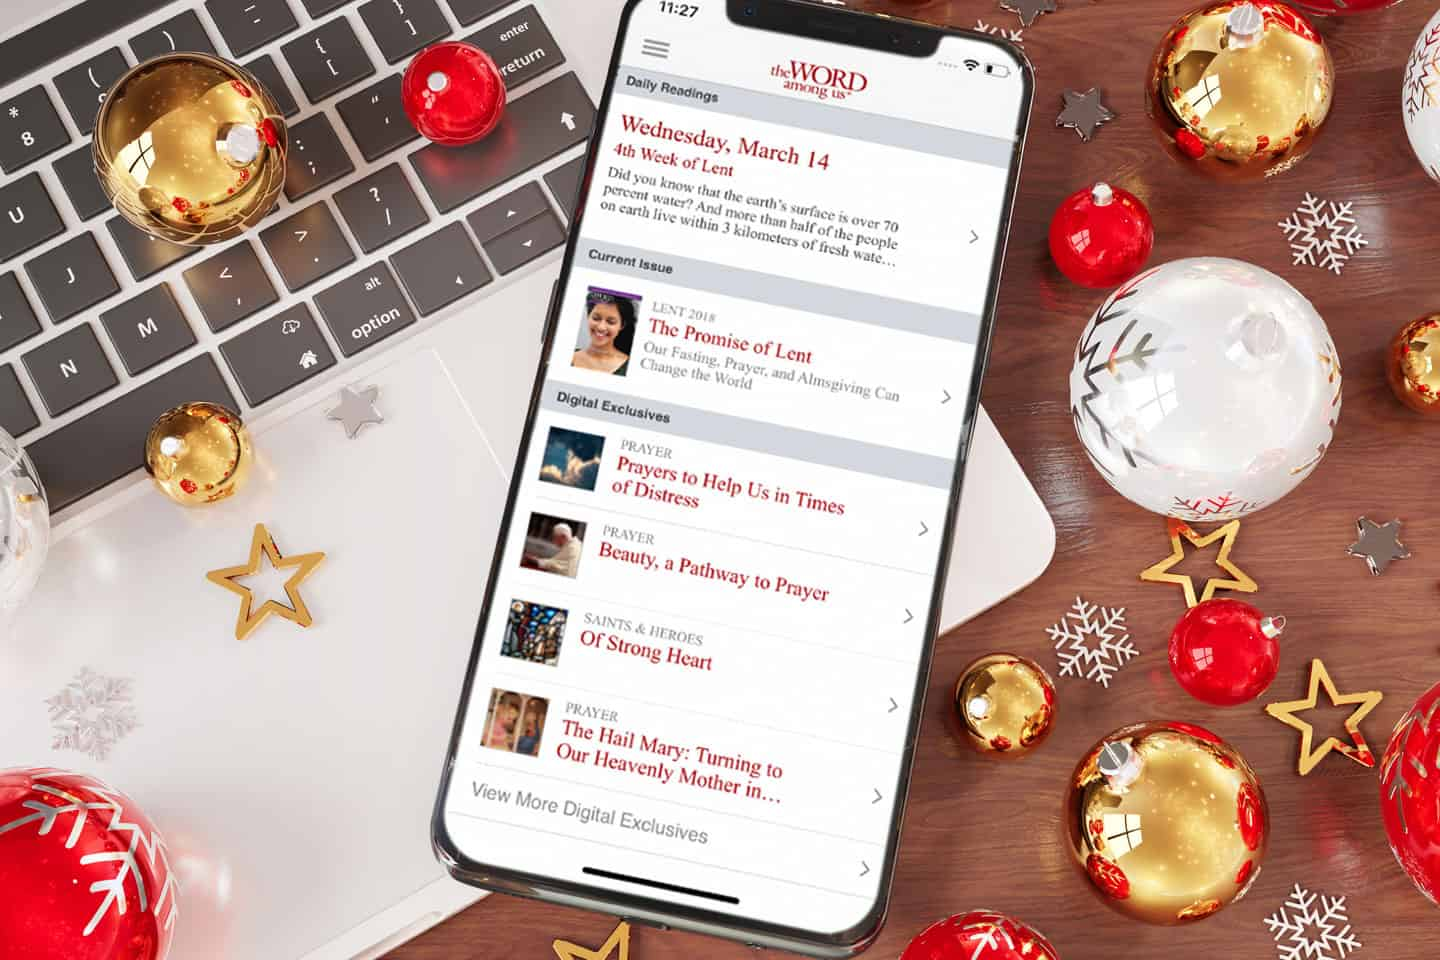 10 Apps and Resources for Advent and Christmas 2018 - CatholicApps.com